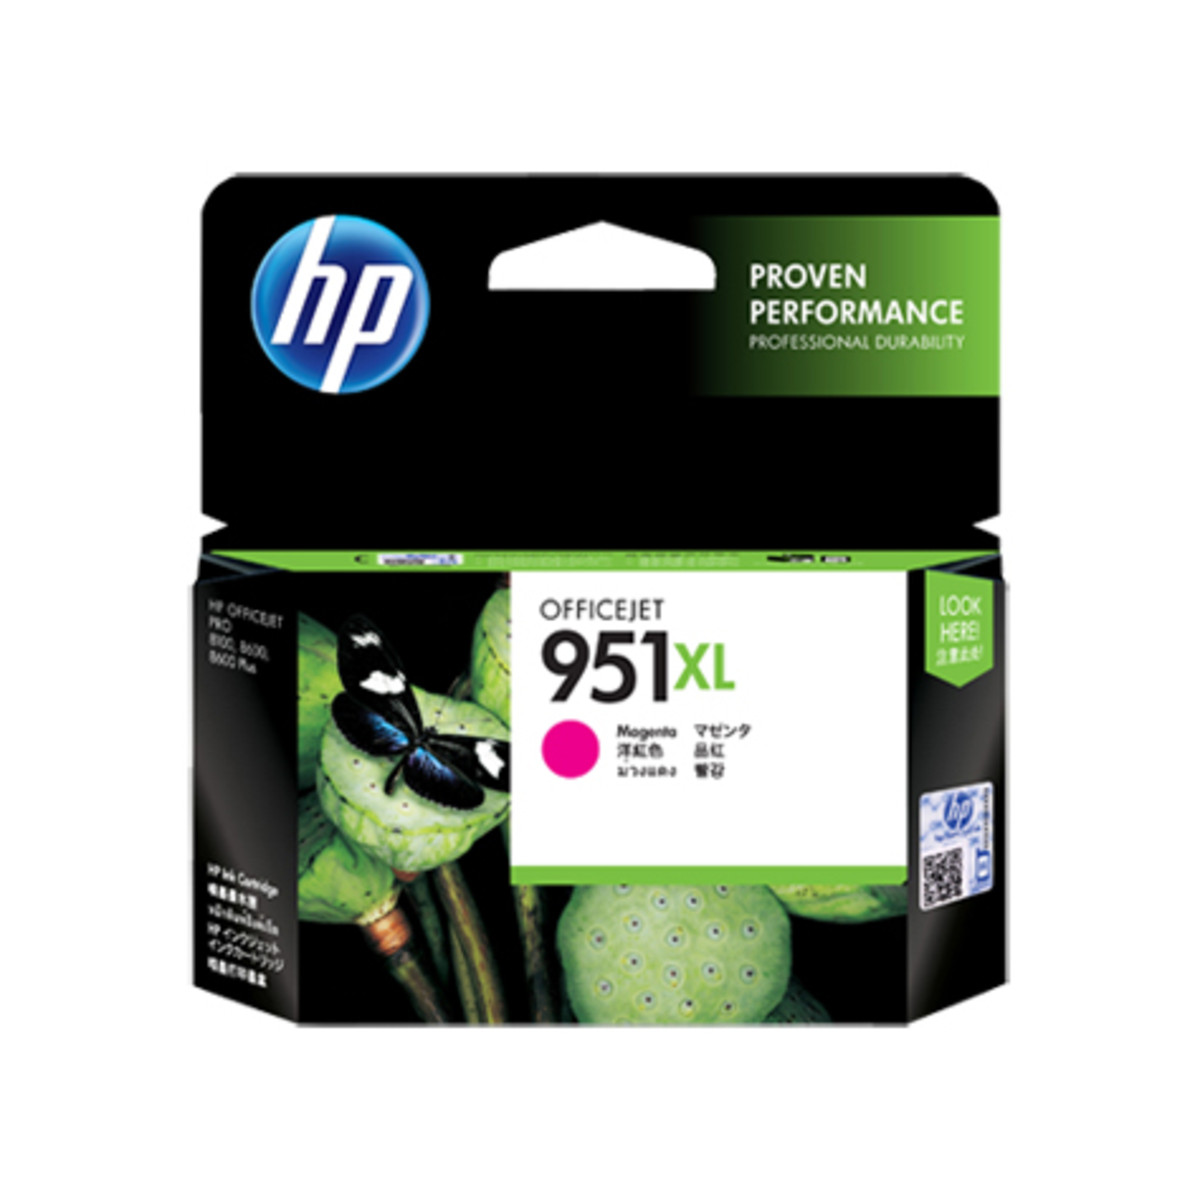 HP 951XL (CN047AA) Magenta Ink Cartridge - High Yield